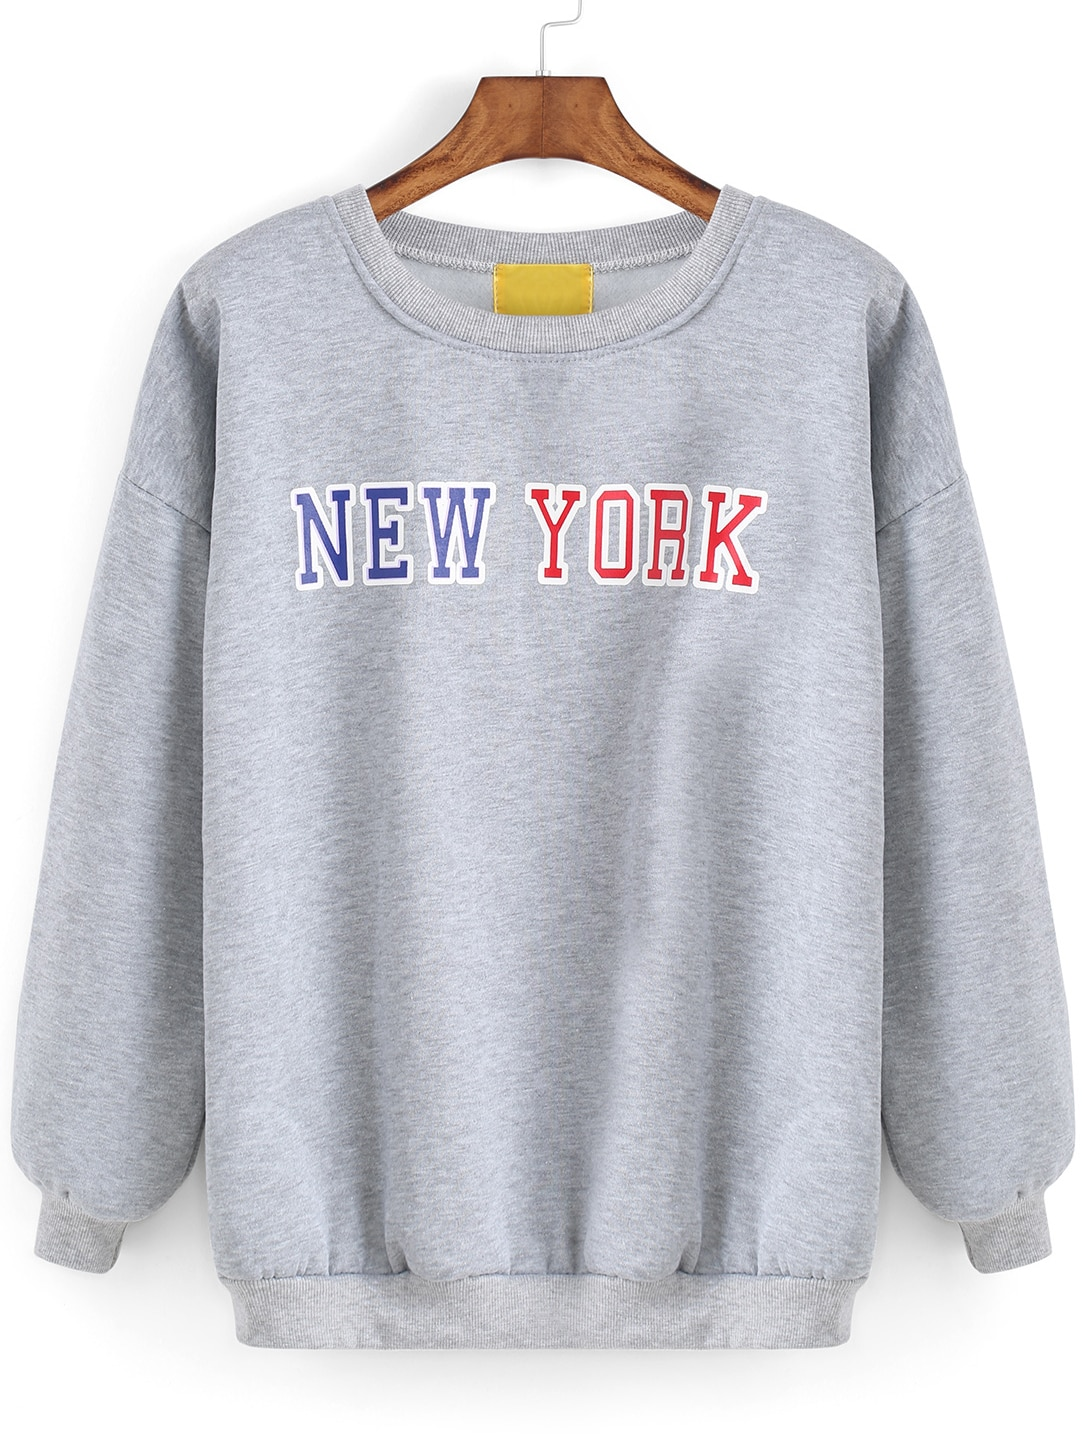 Shop New York University Mens Sweatshirts, Hoodies, Crewnecks, and Fleece at the Bookstore. Flat-Rate Shipping.